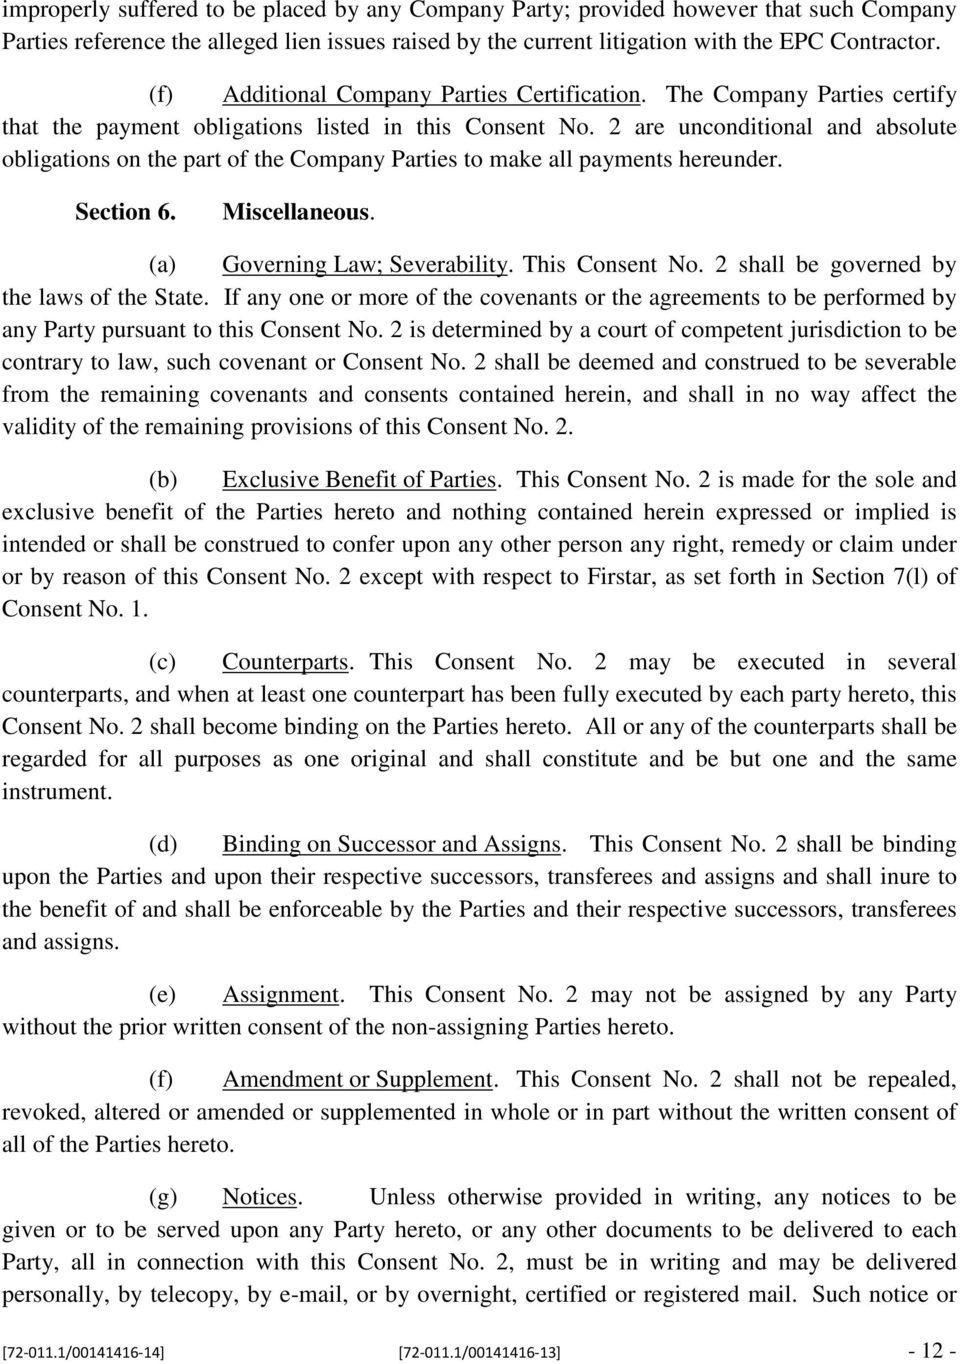 2 are unconditional and absolute obligations on the part of the Company Parties to make all payments hereunder. Section 6. Miscellaneous. (a) Governing Law; Severability. This Consent No.